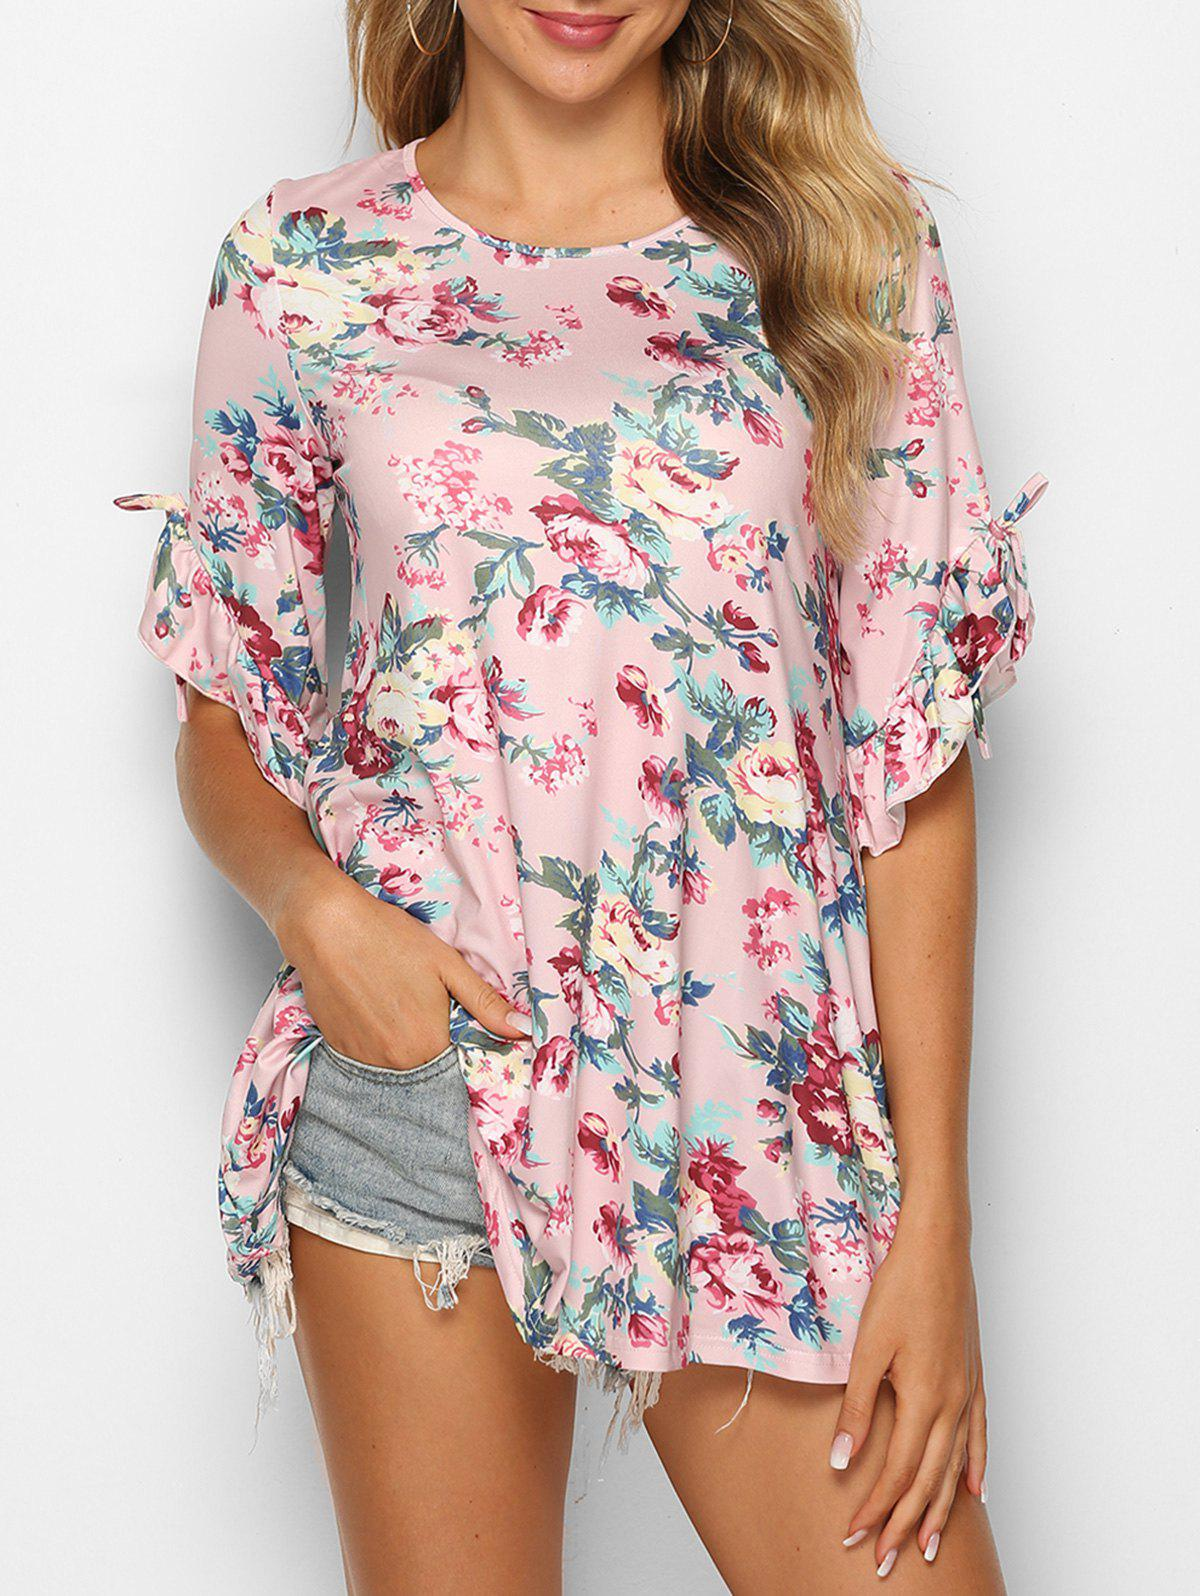 Ruffle Cuff Floral Print T Shirt - PINK ROSE S